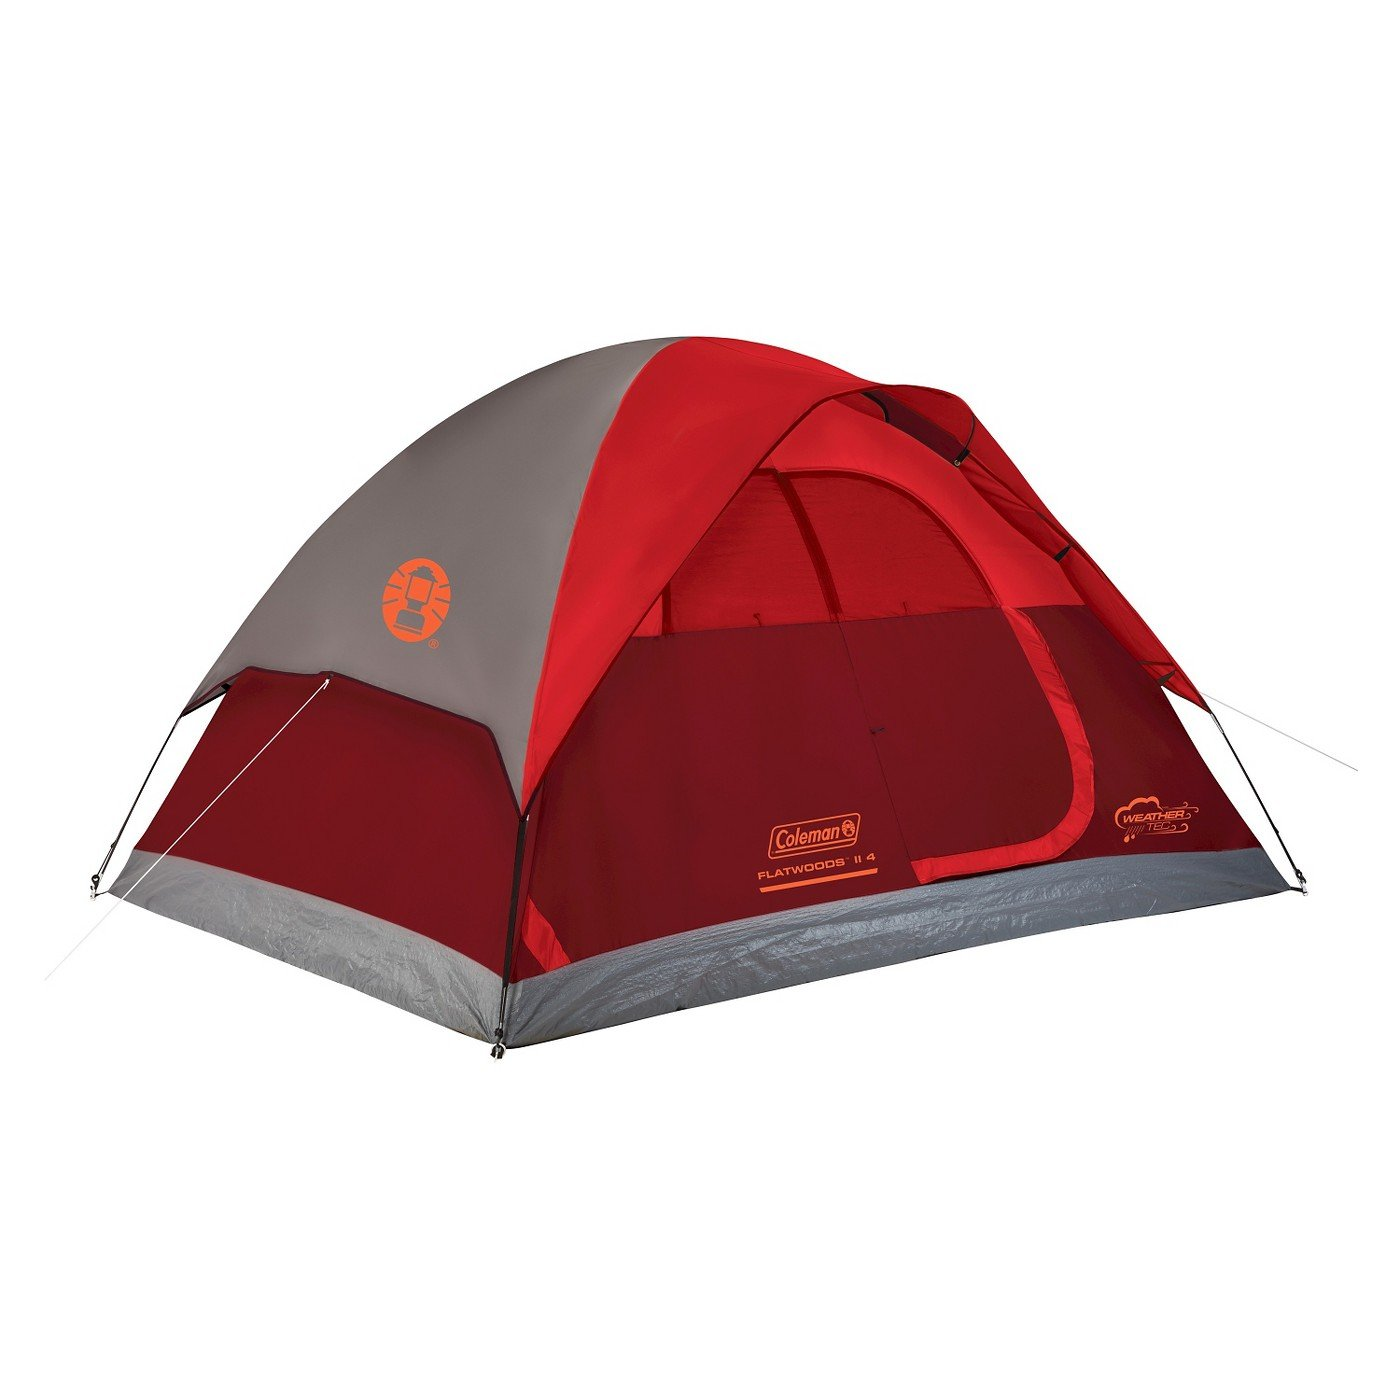 Coleman Flatwoods II 4 Person Tent